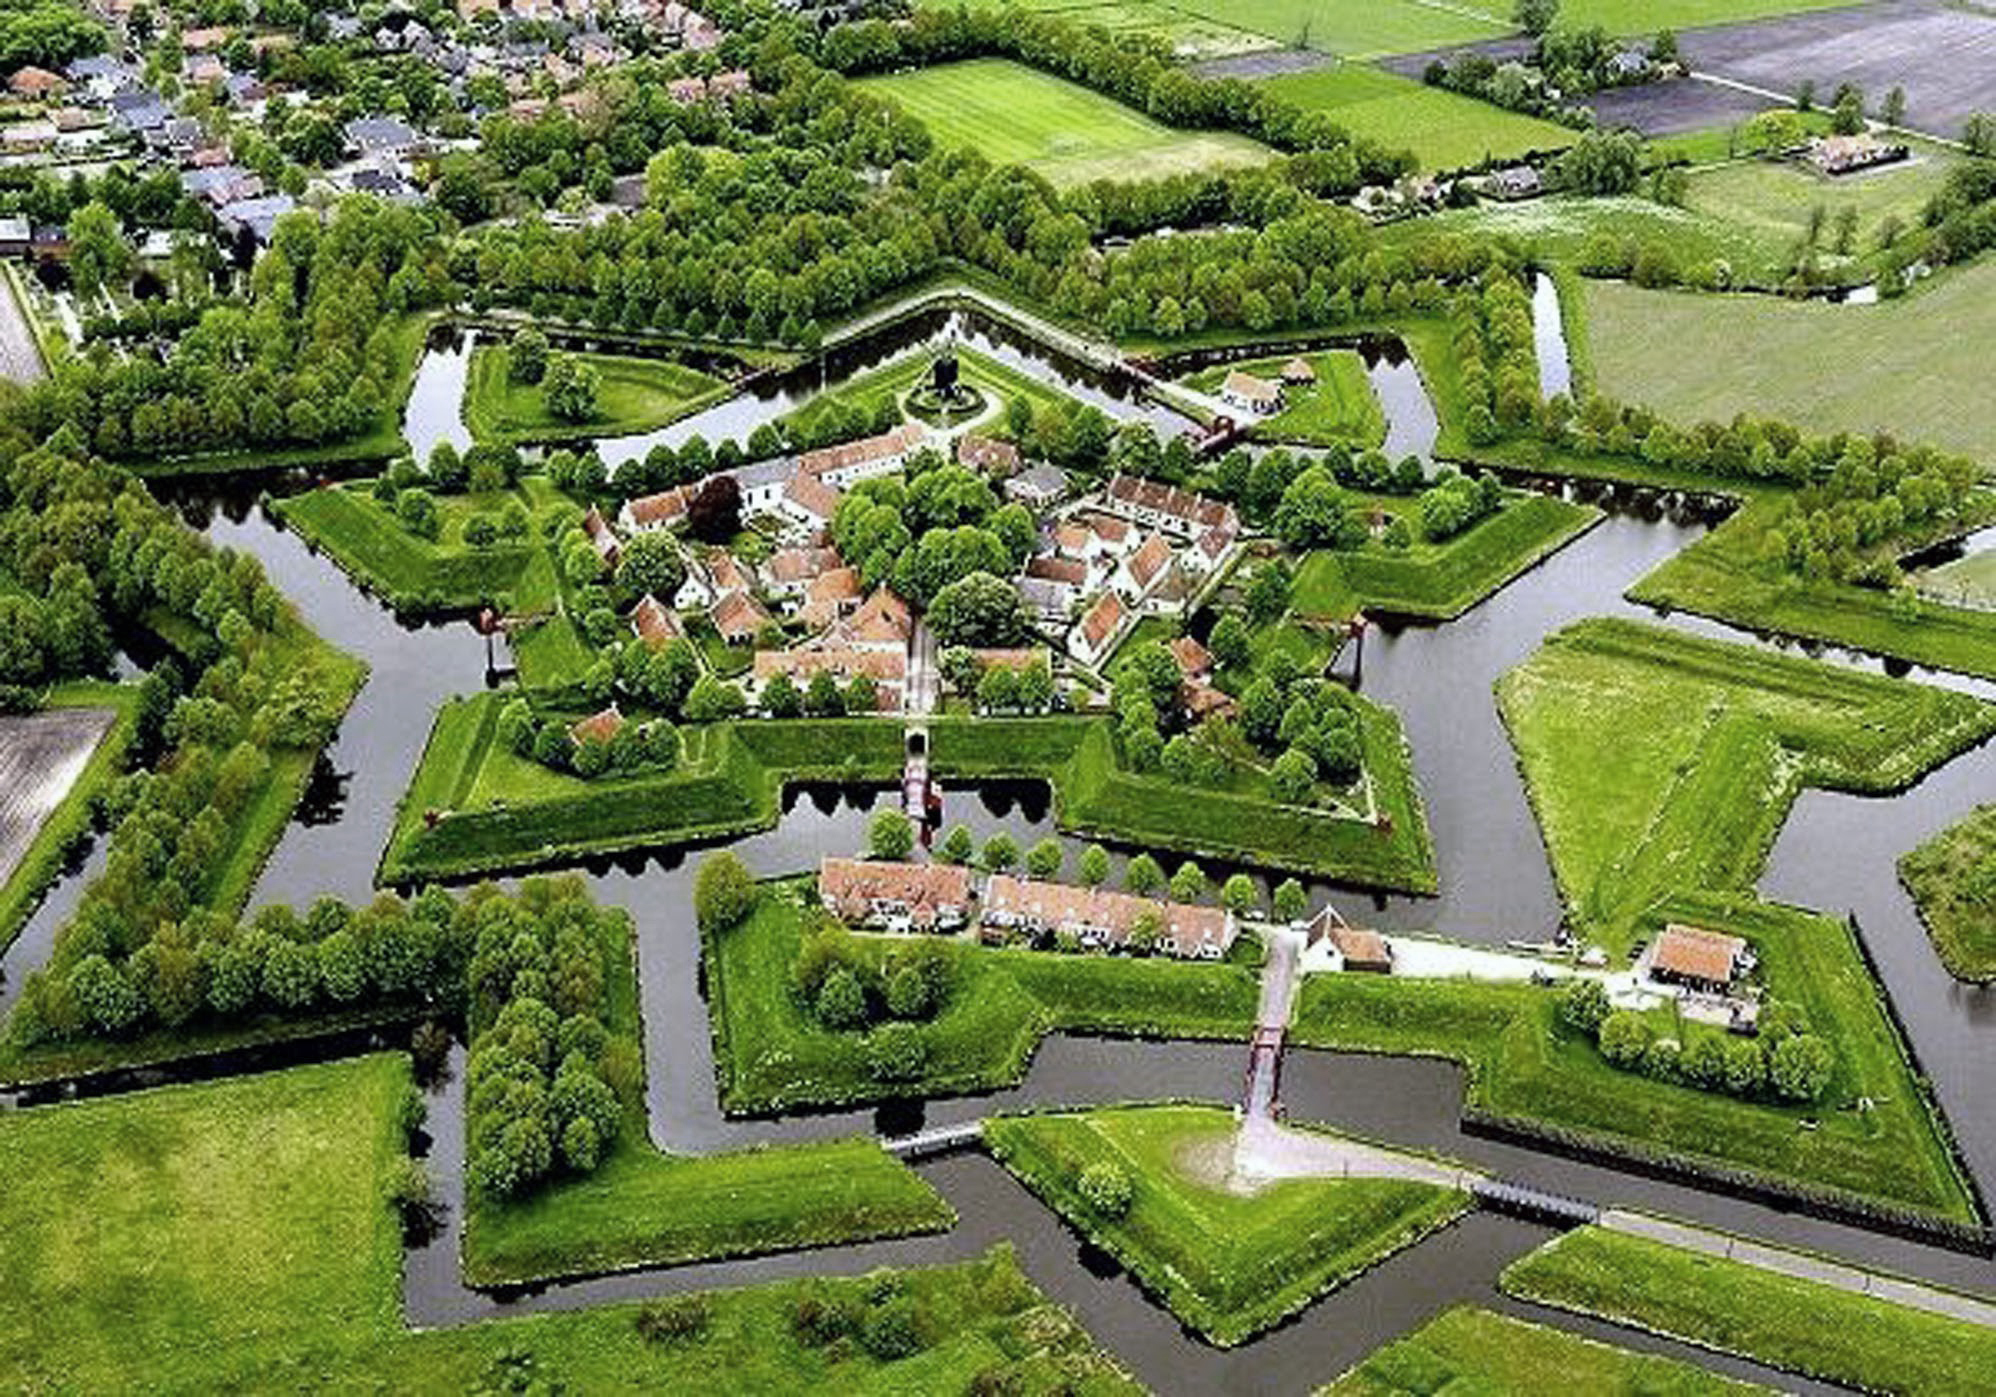 http://upload.wikimedia.org/wikipedia/commons/0/00/Luchtfoto_bourtange.jpg